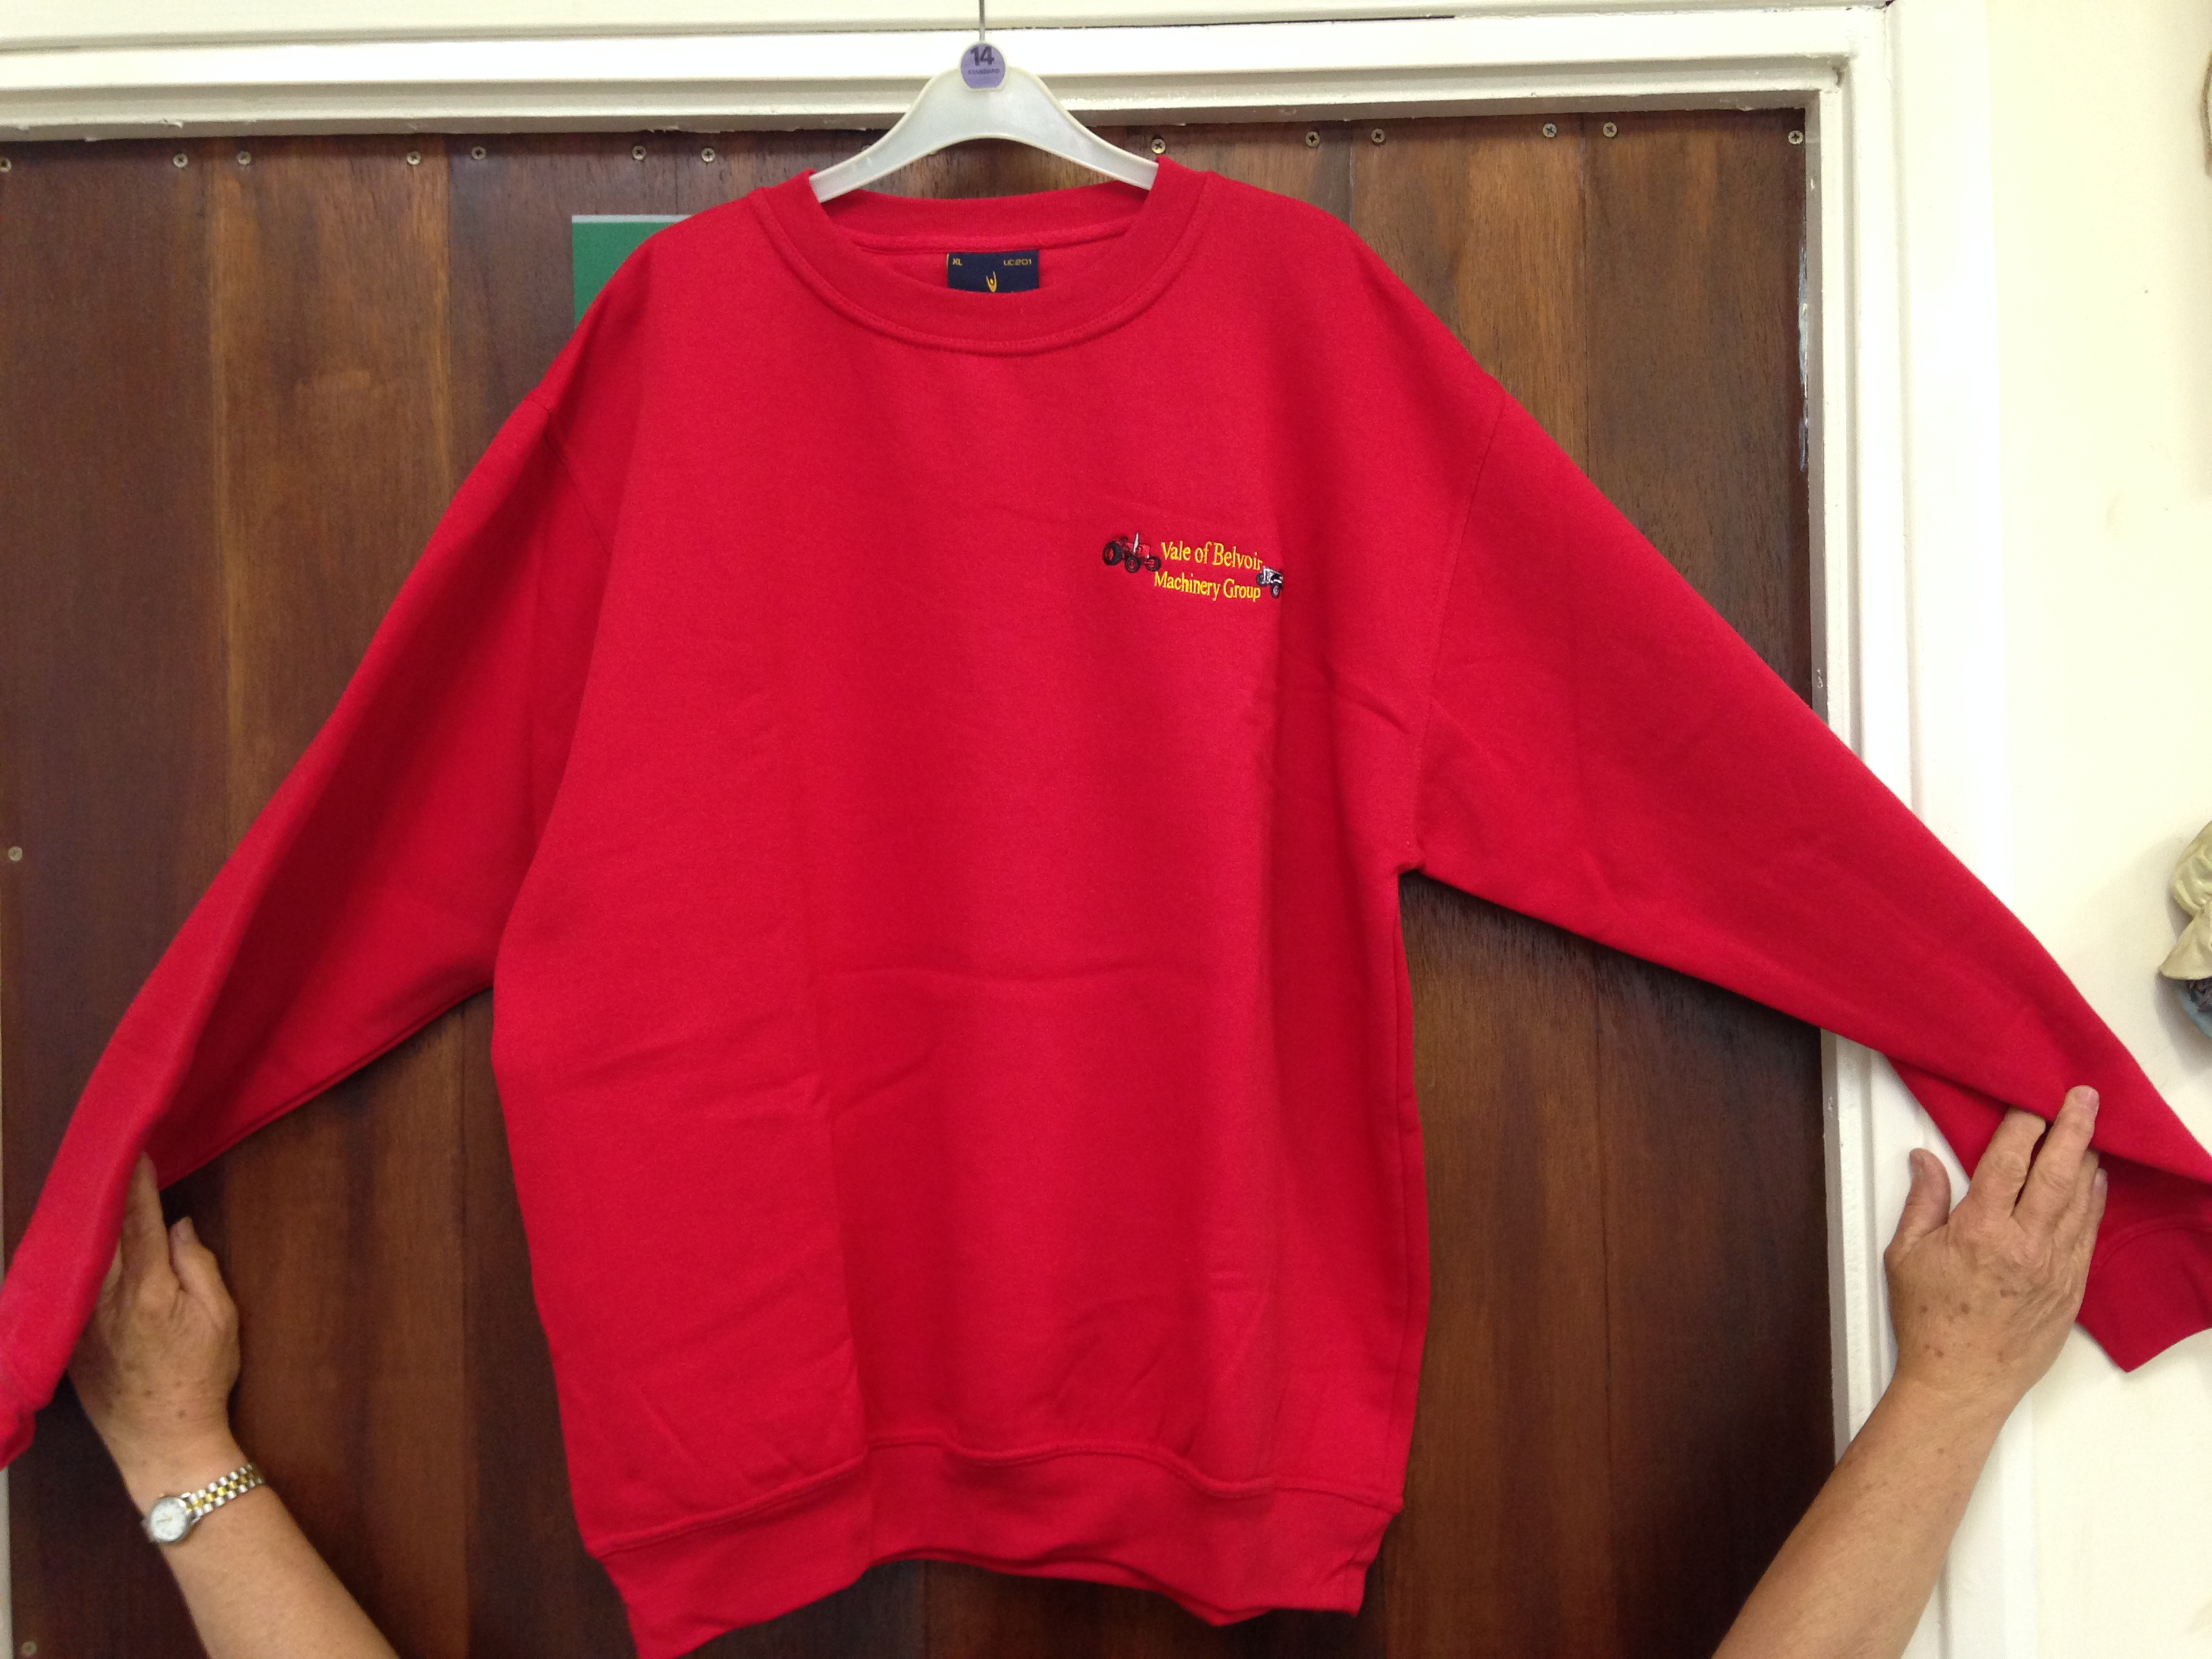 Club Branded Sweatshirt - Available in a variet yof colours and sizes priced at £13